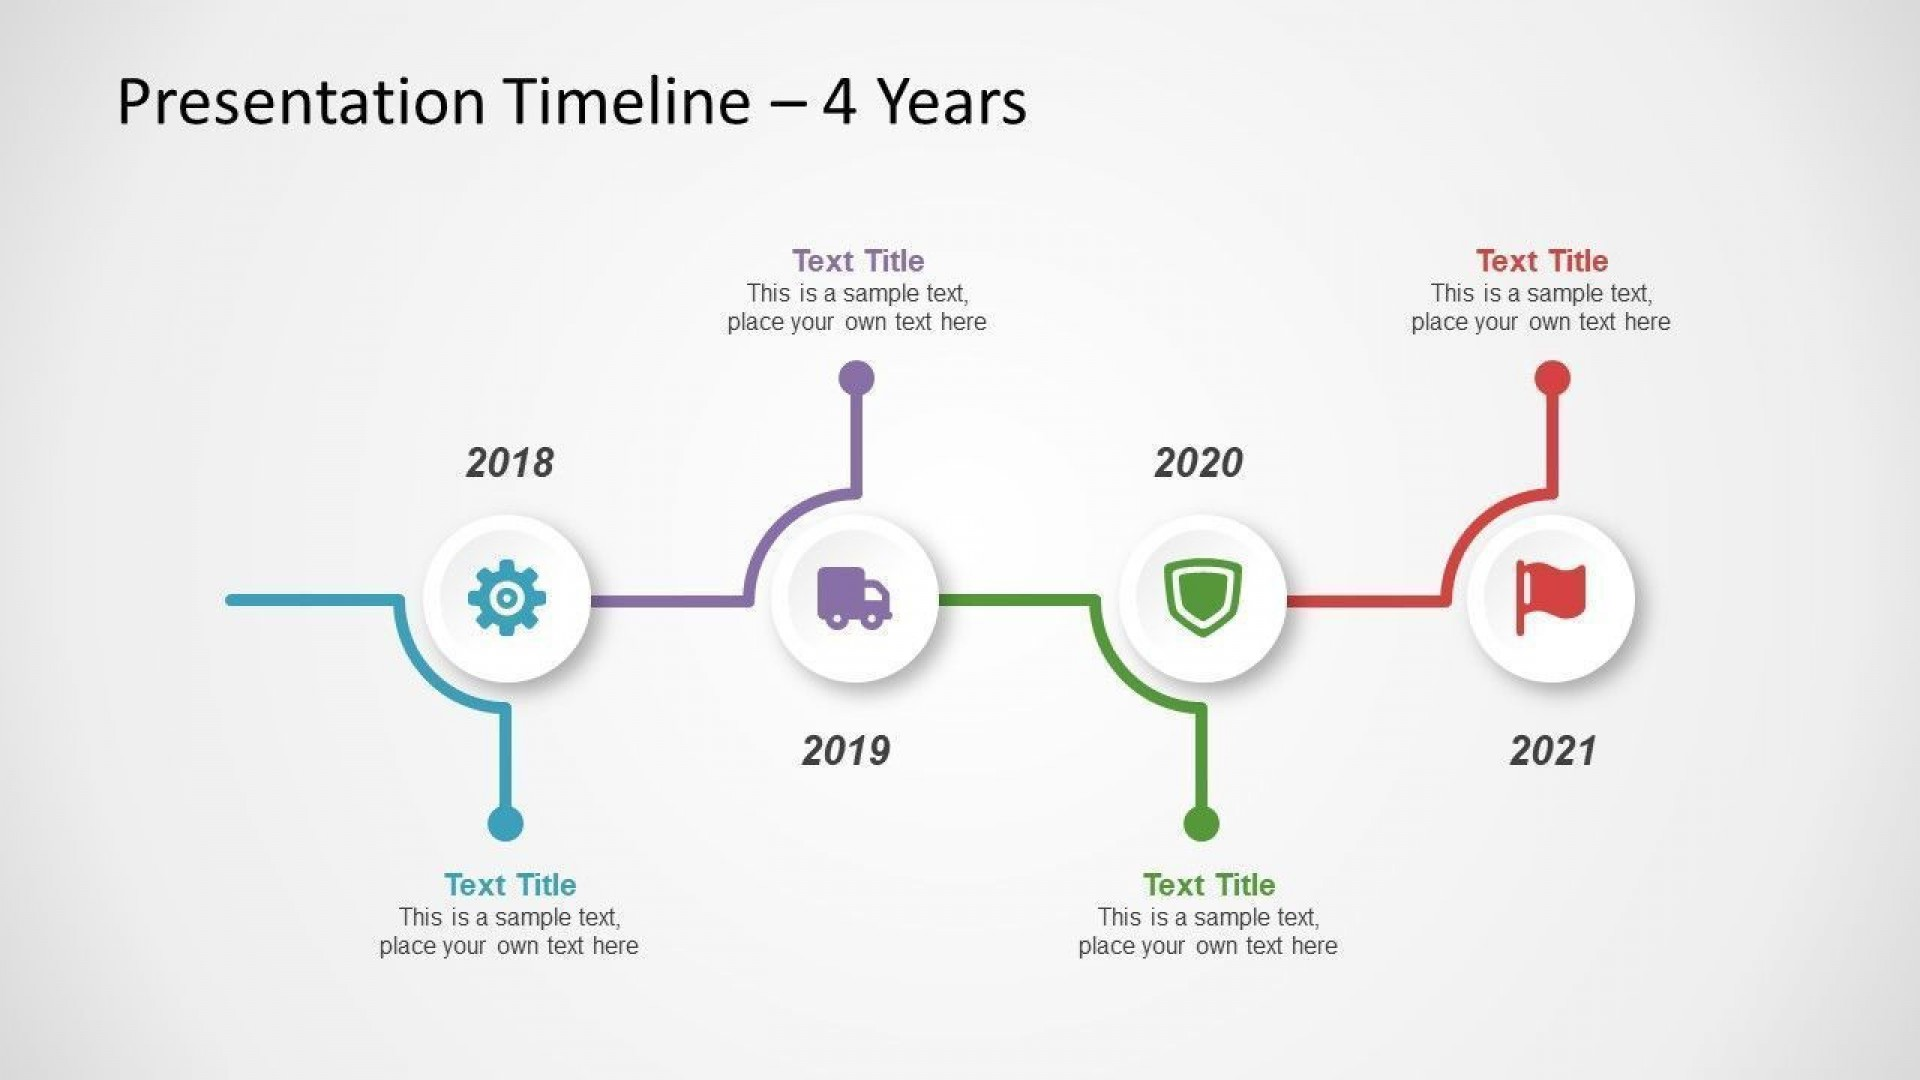 000 Awesome Timeline Template For Word Photo  Wordpres Free1920